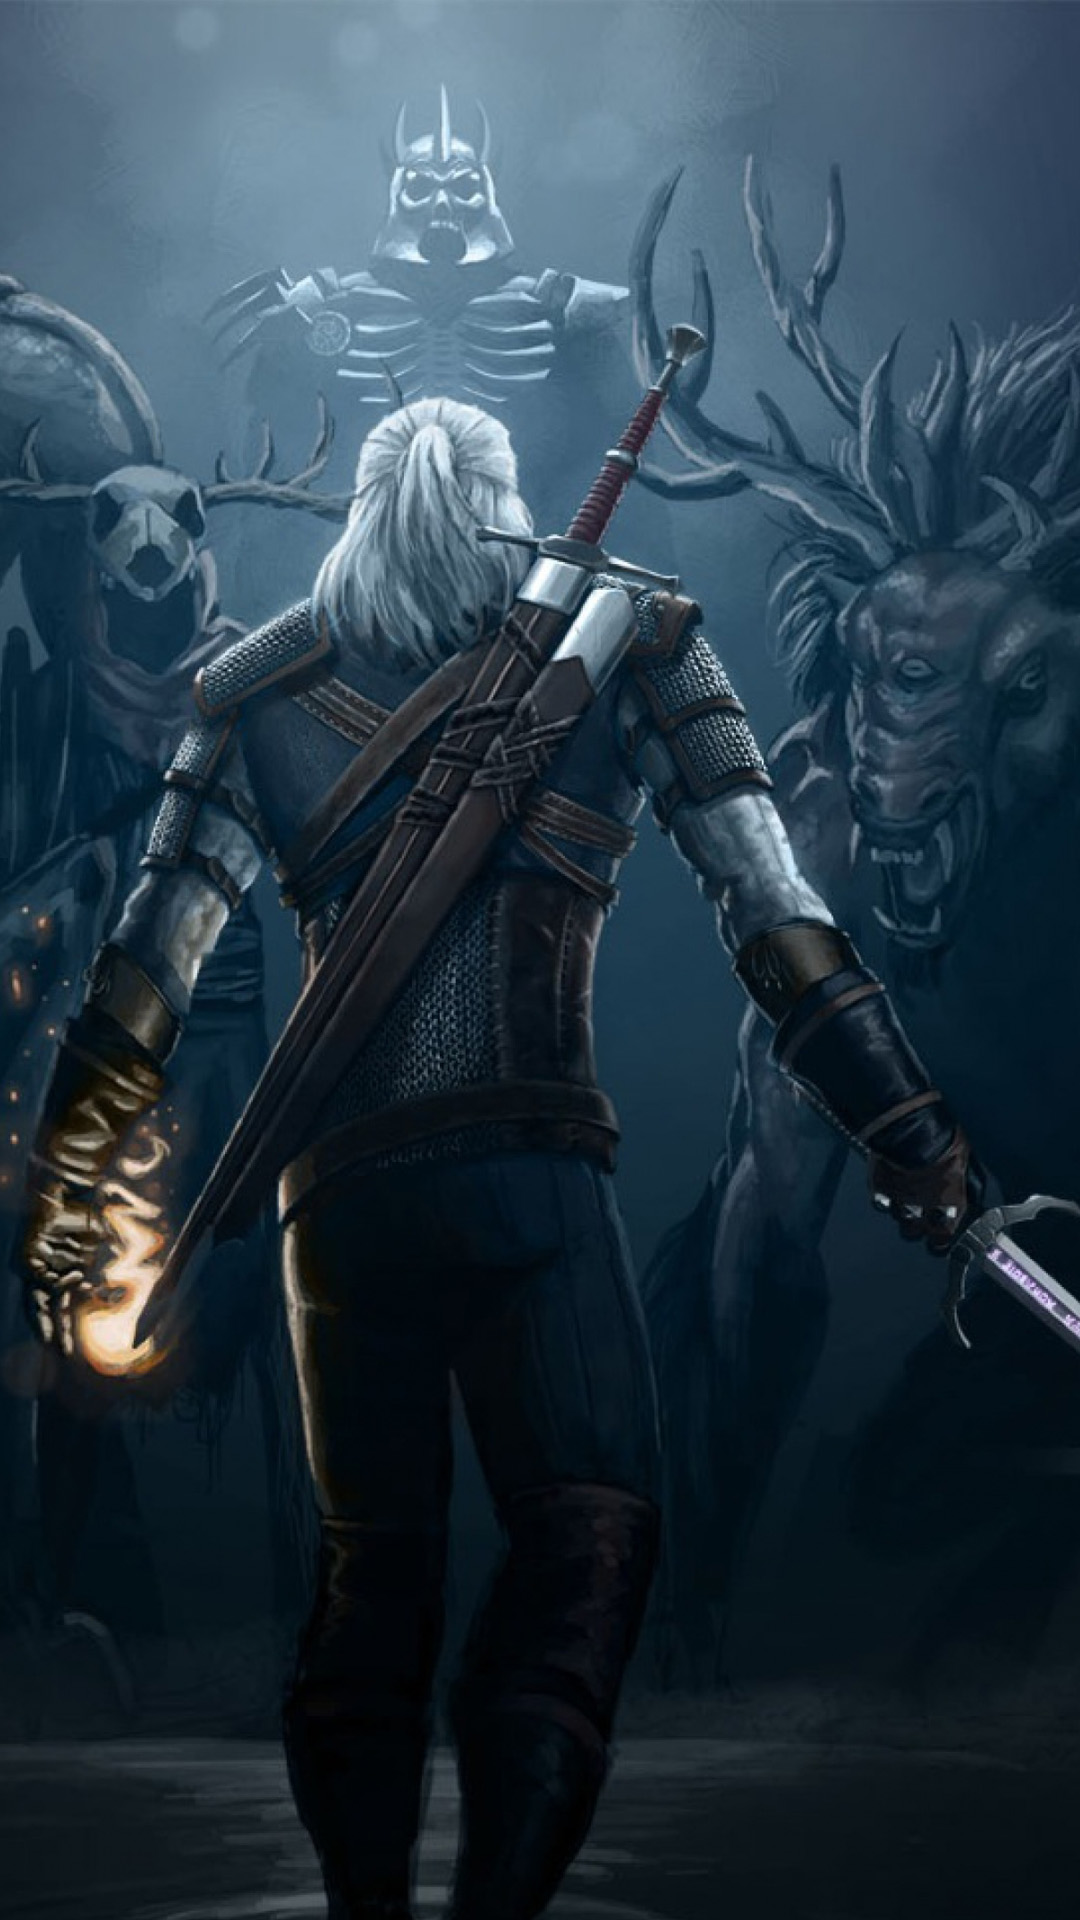 The Witcher 3 Game 4K Ultra HD Mobile Wallpaper